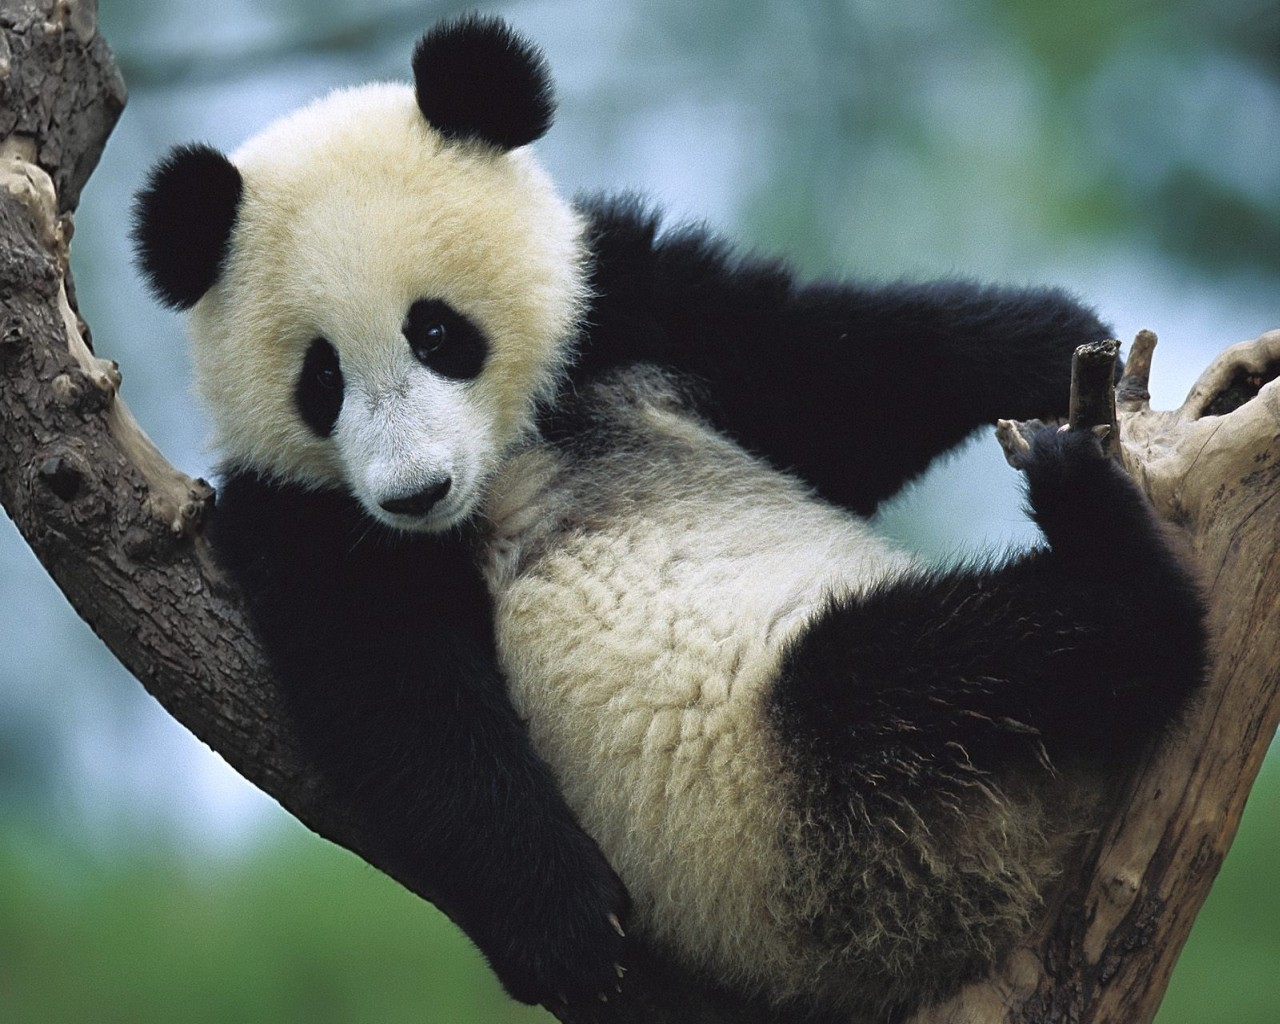 9847 download wallpaper Animals, Bears, Pandas screensavers and pictures for free